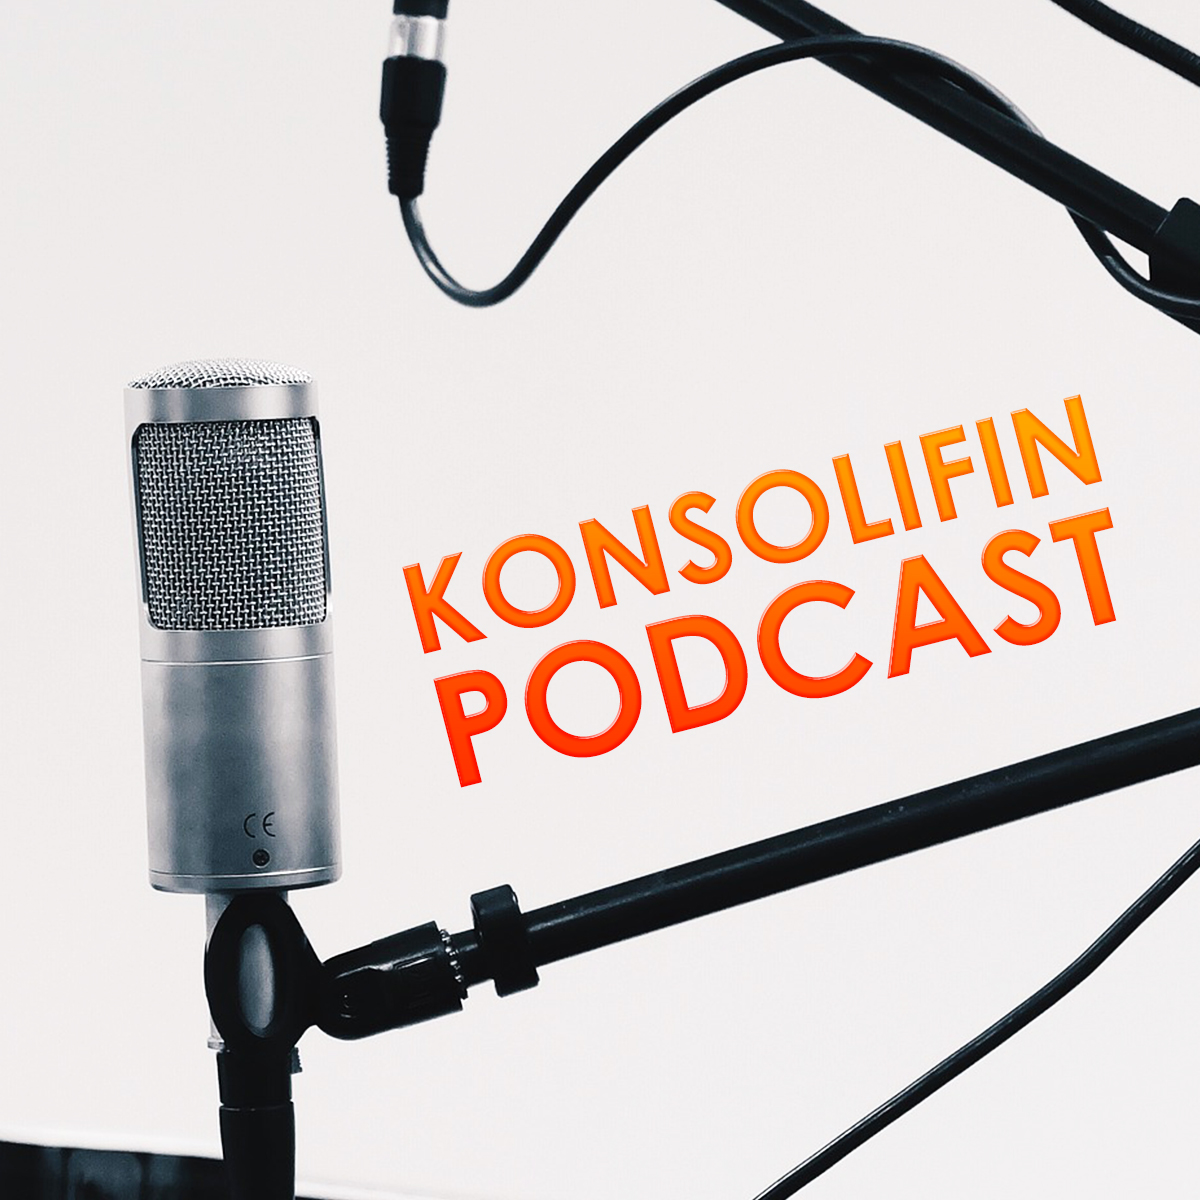 KonsoliFIN Podcast